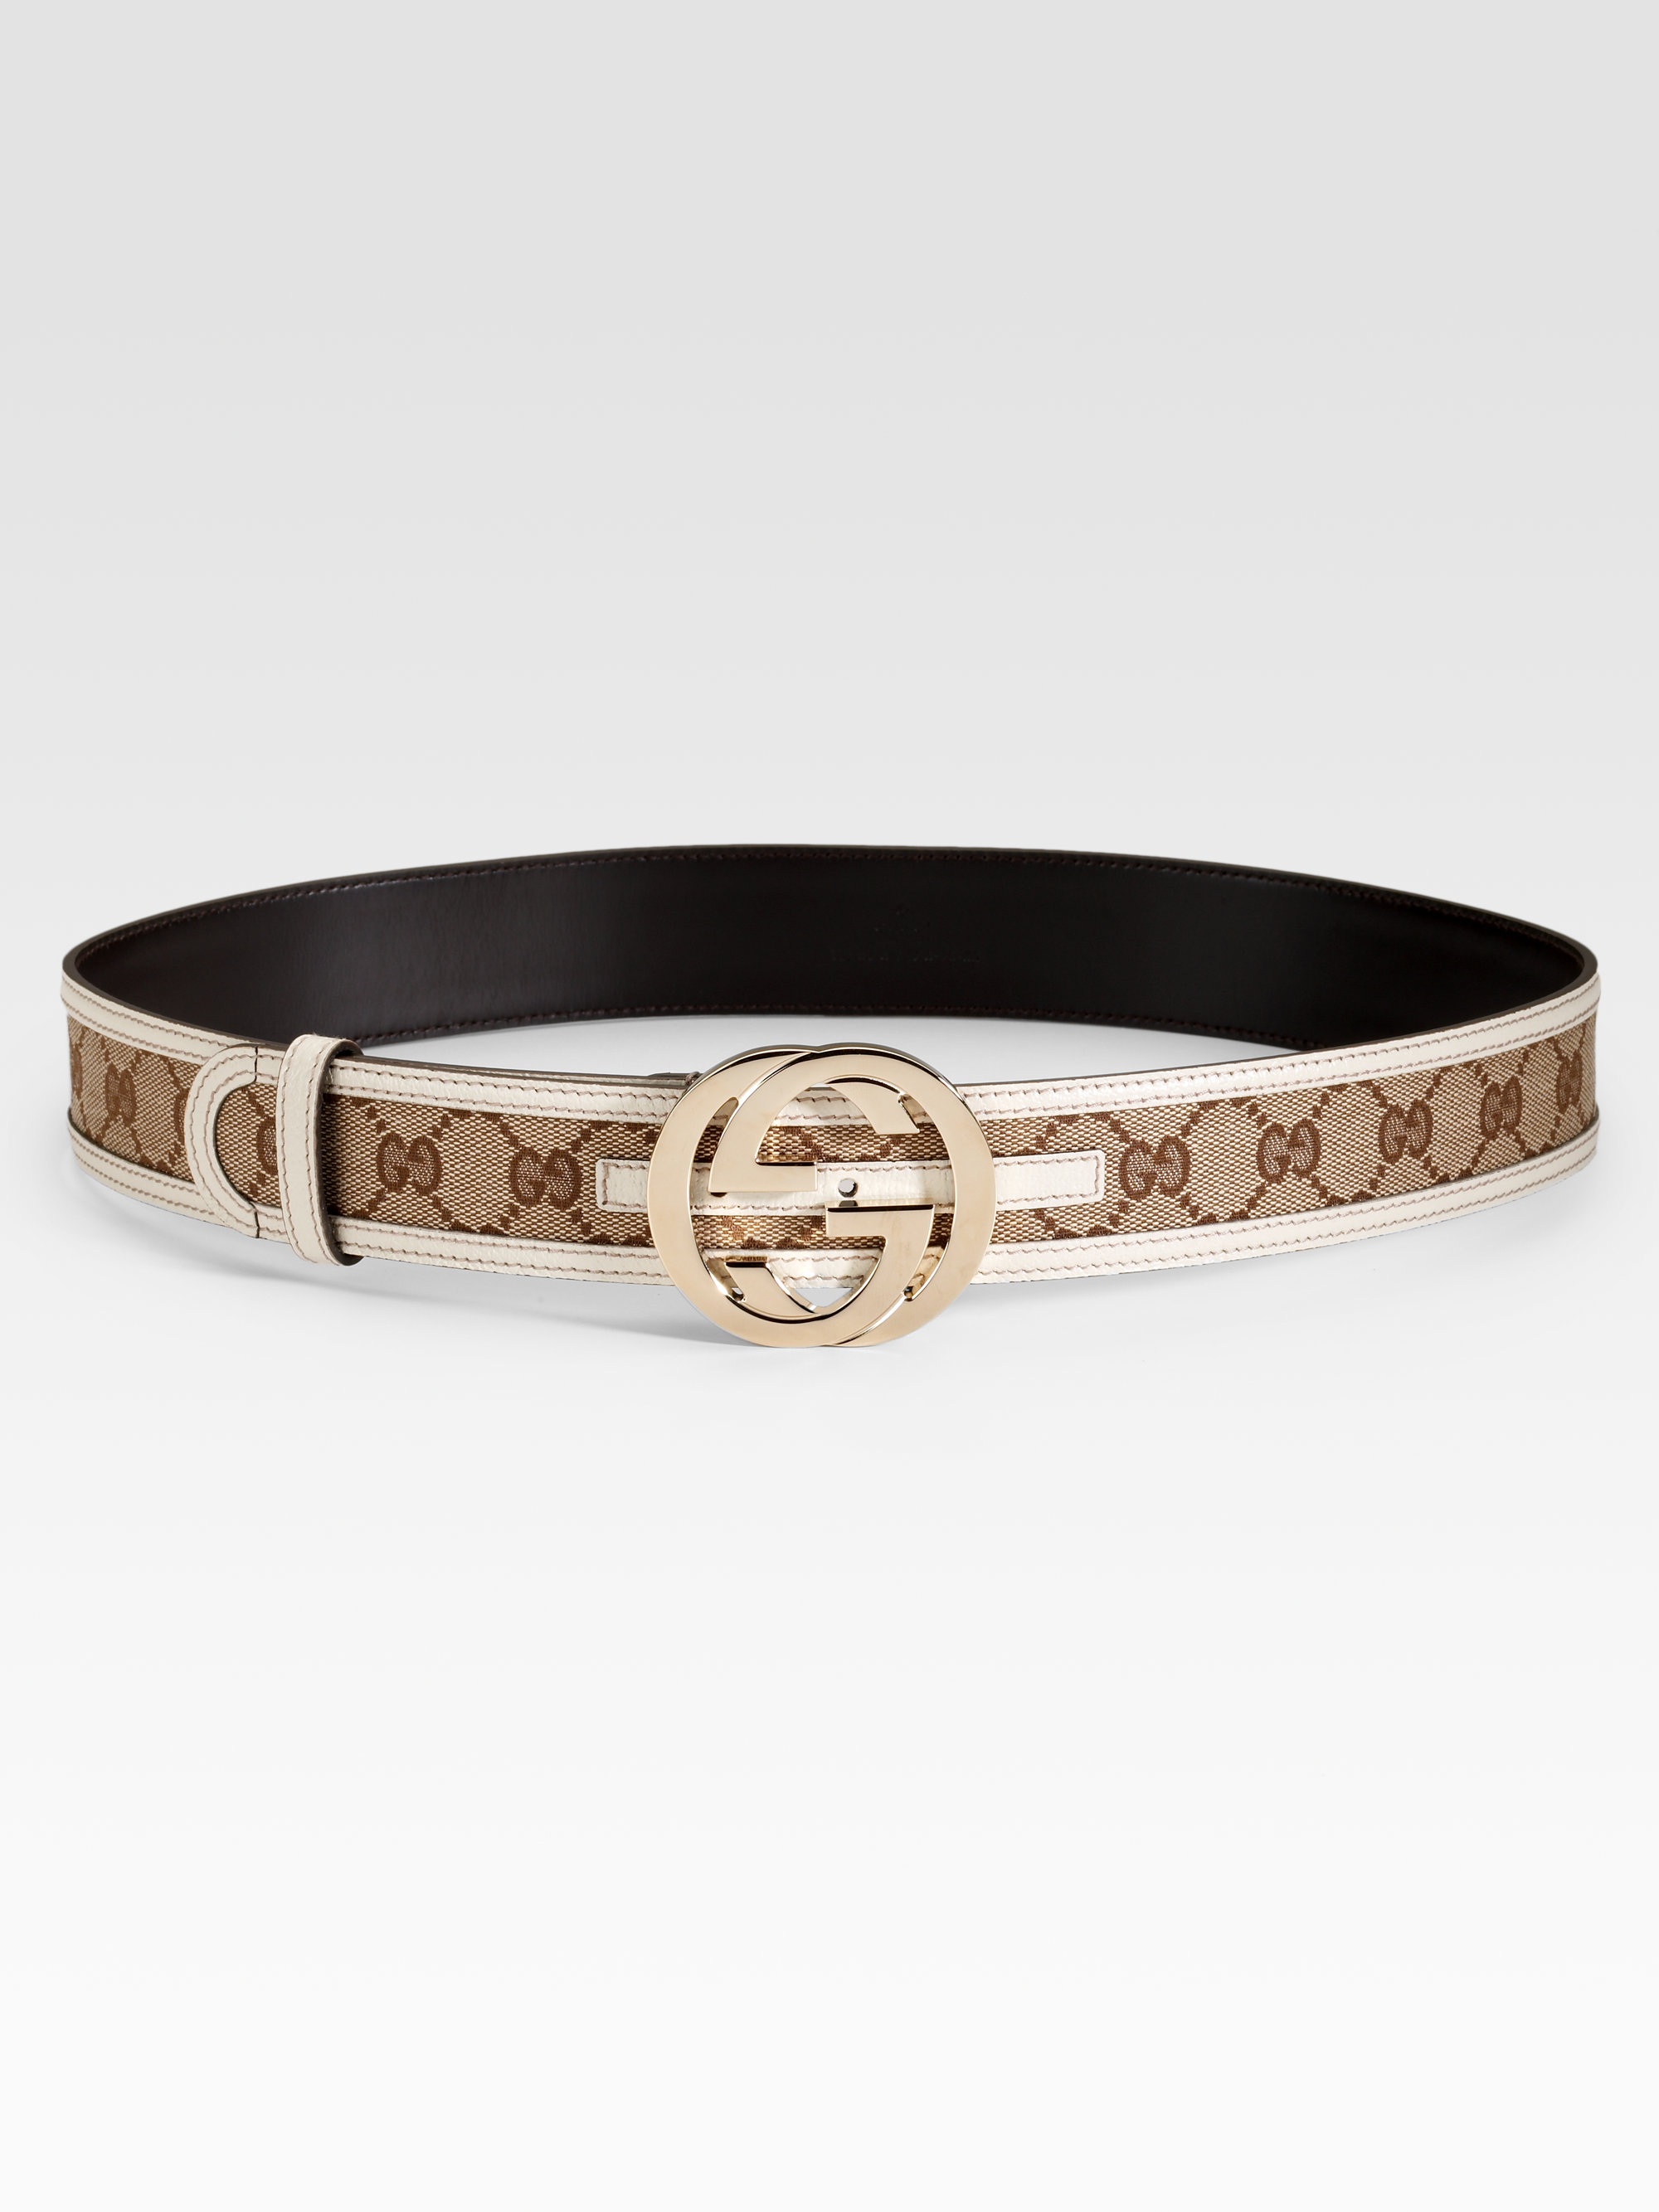 Gucci Interlocking G Buckle Belt in Brown (beige-white) | Lyst